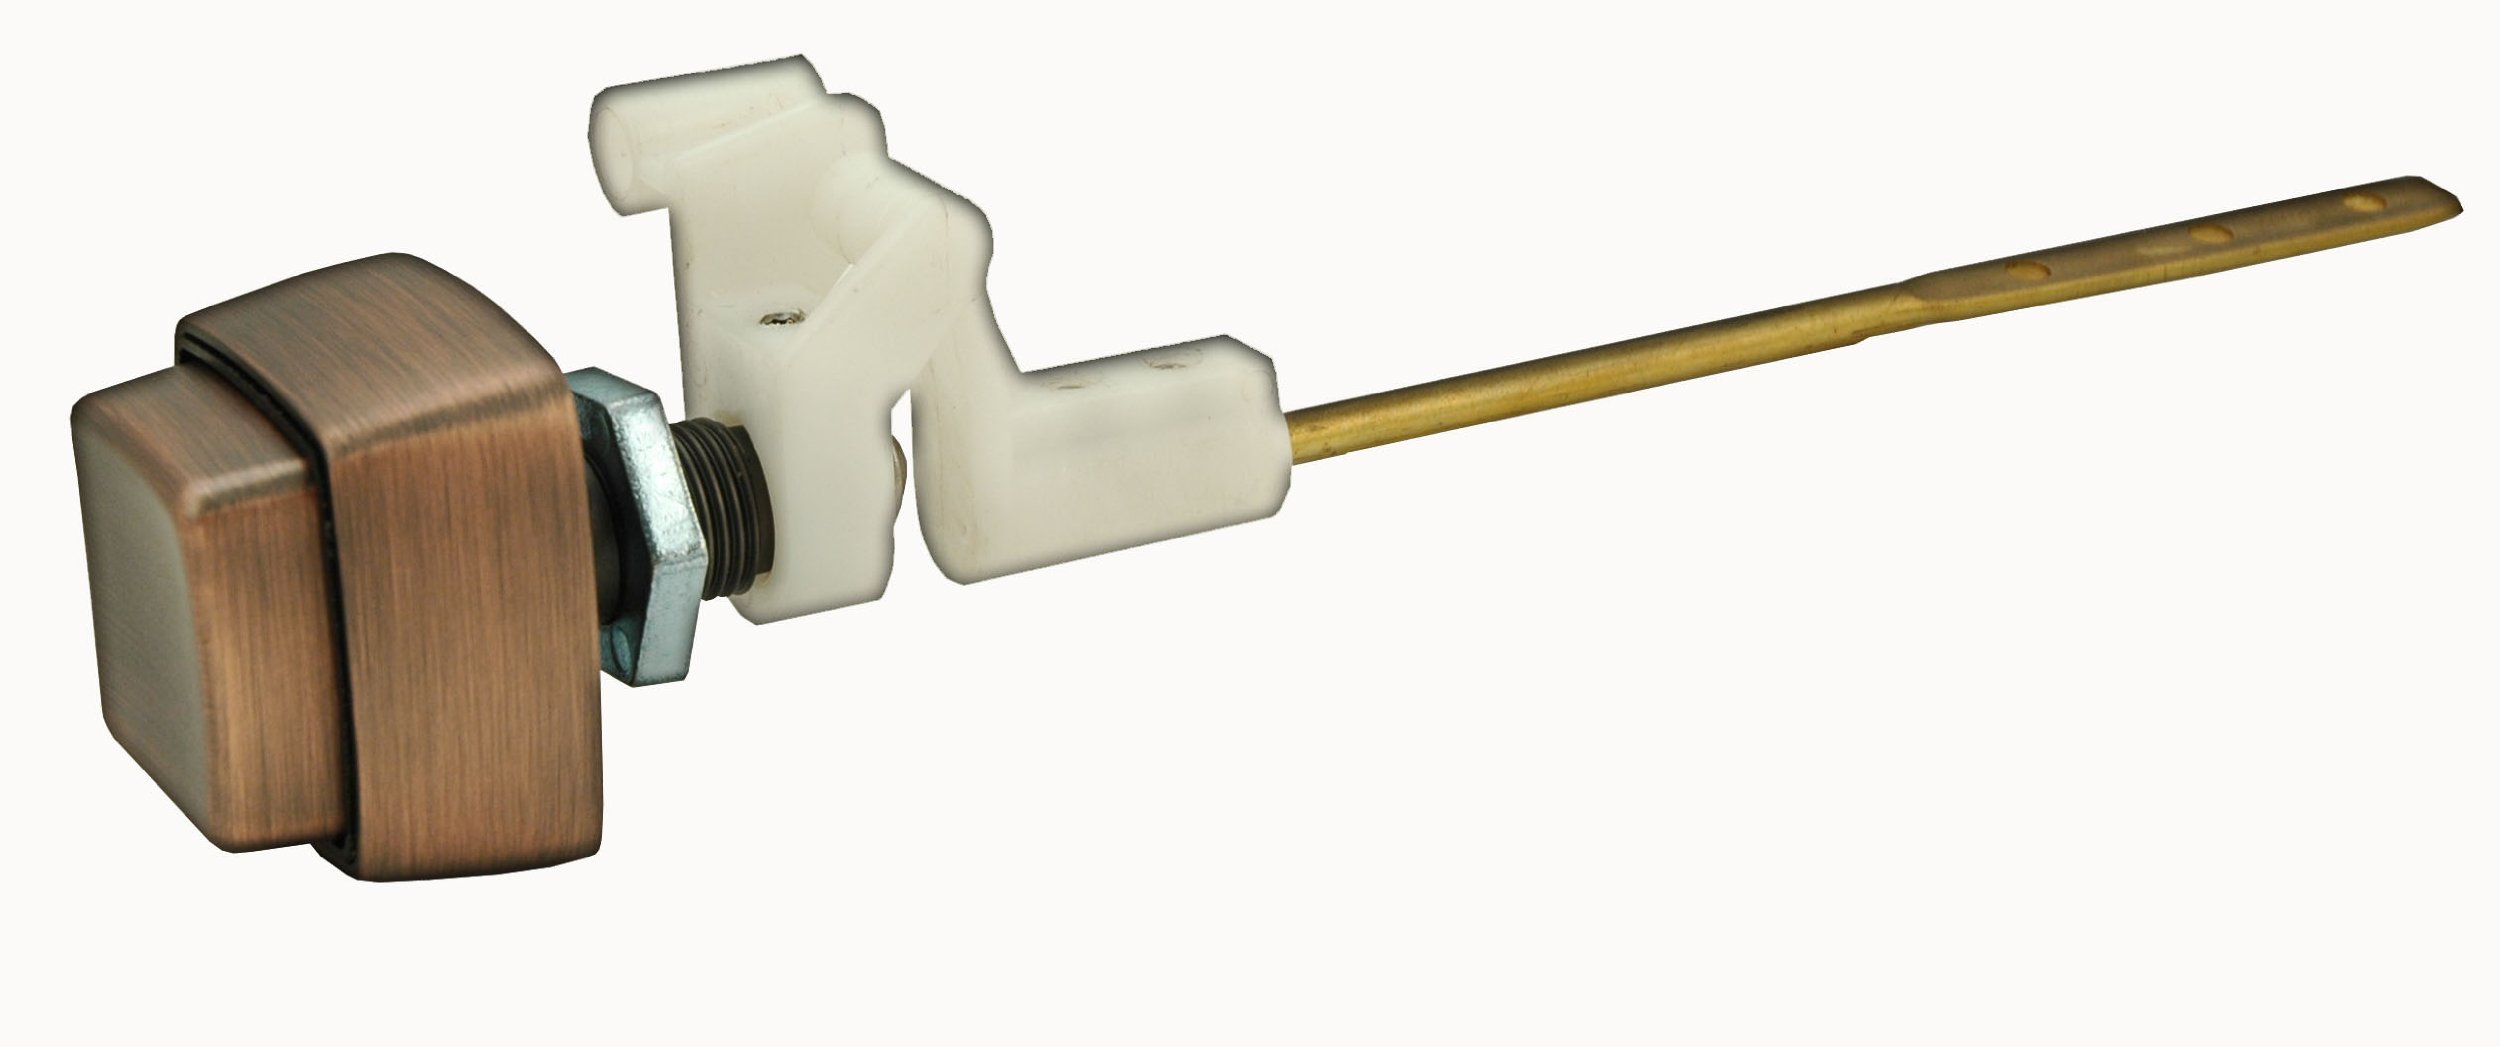 Toilet Tank Lever, Push-button Type, Antique Copper Finish, By Plumb USA